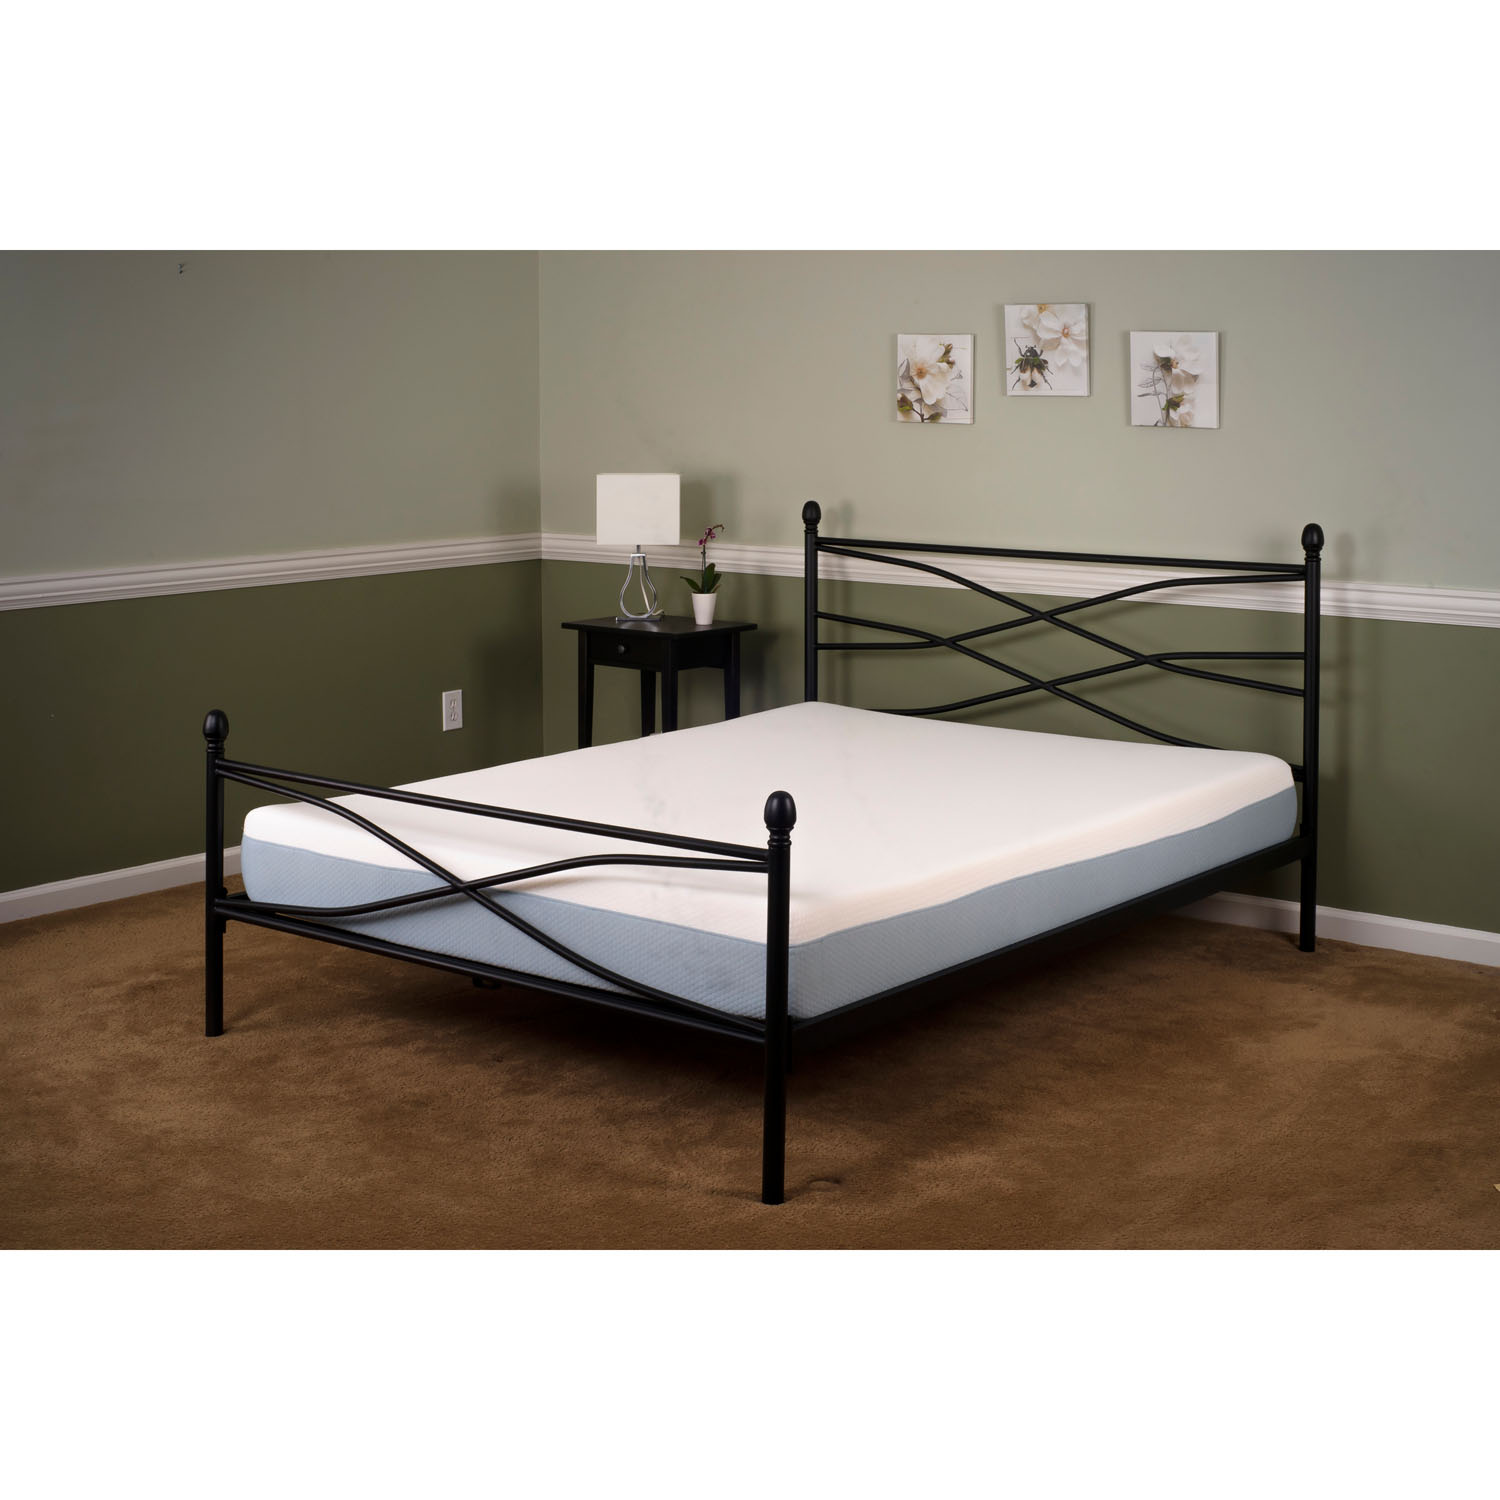 Soho Metal Queen Platform Bed Frame Hbedsoho Qn